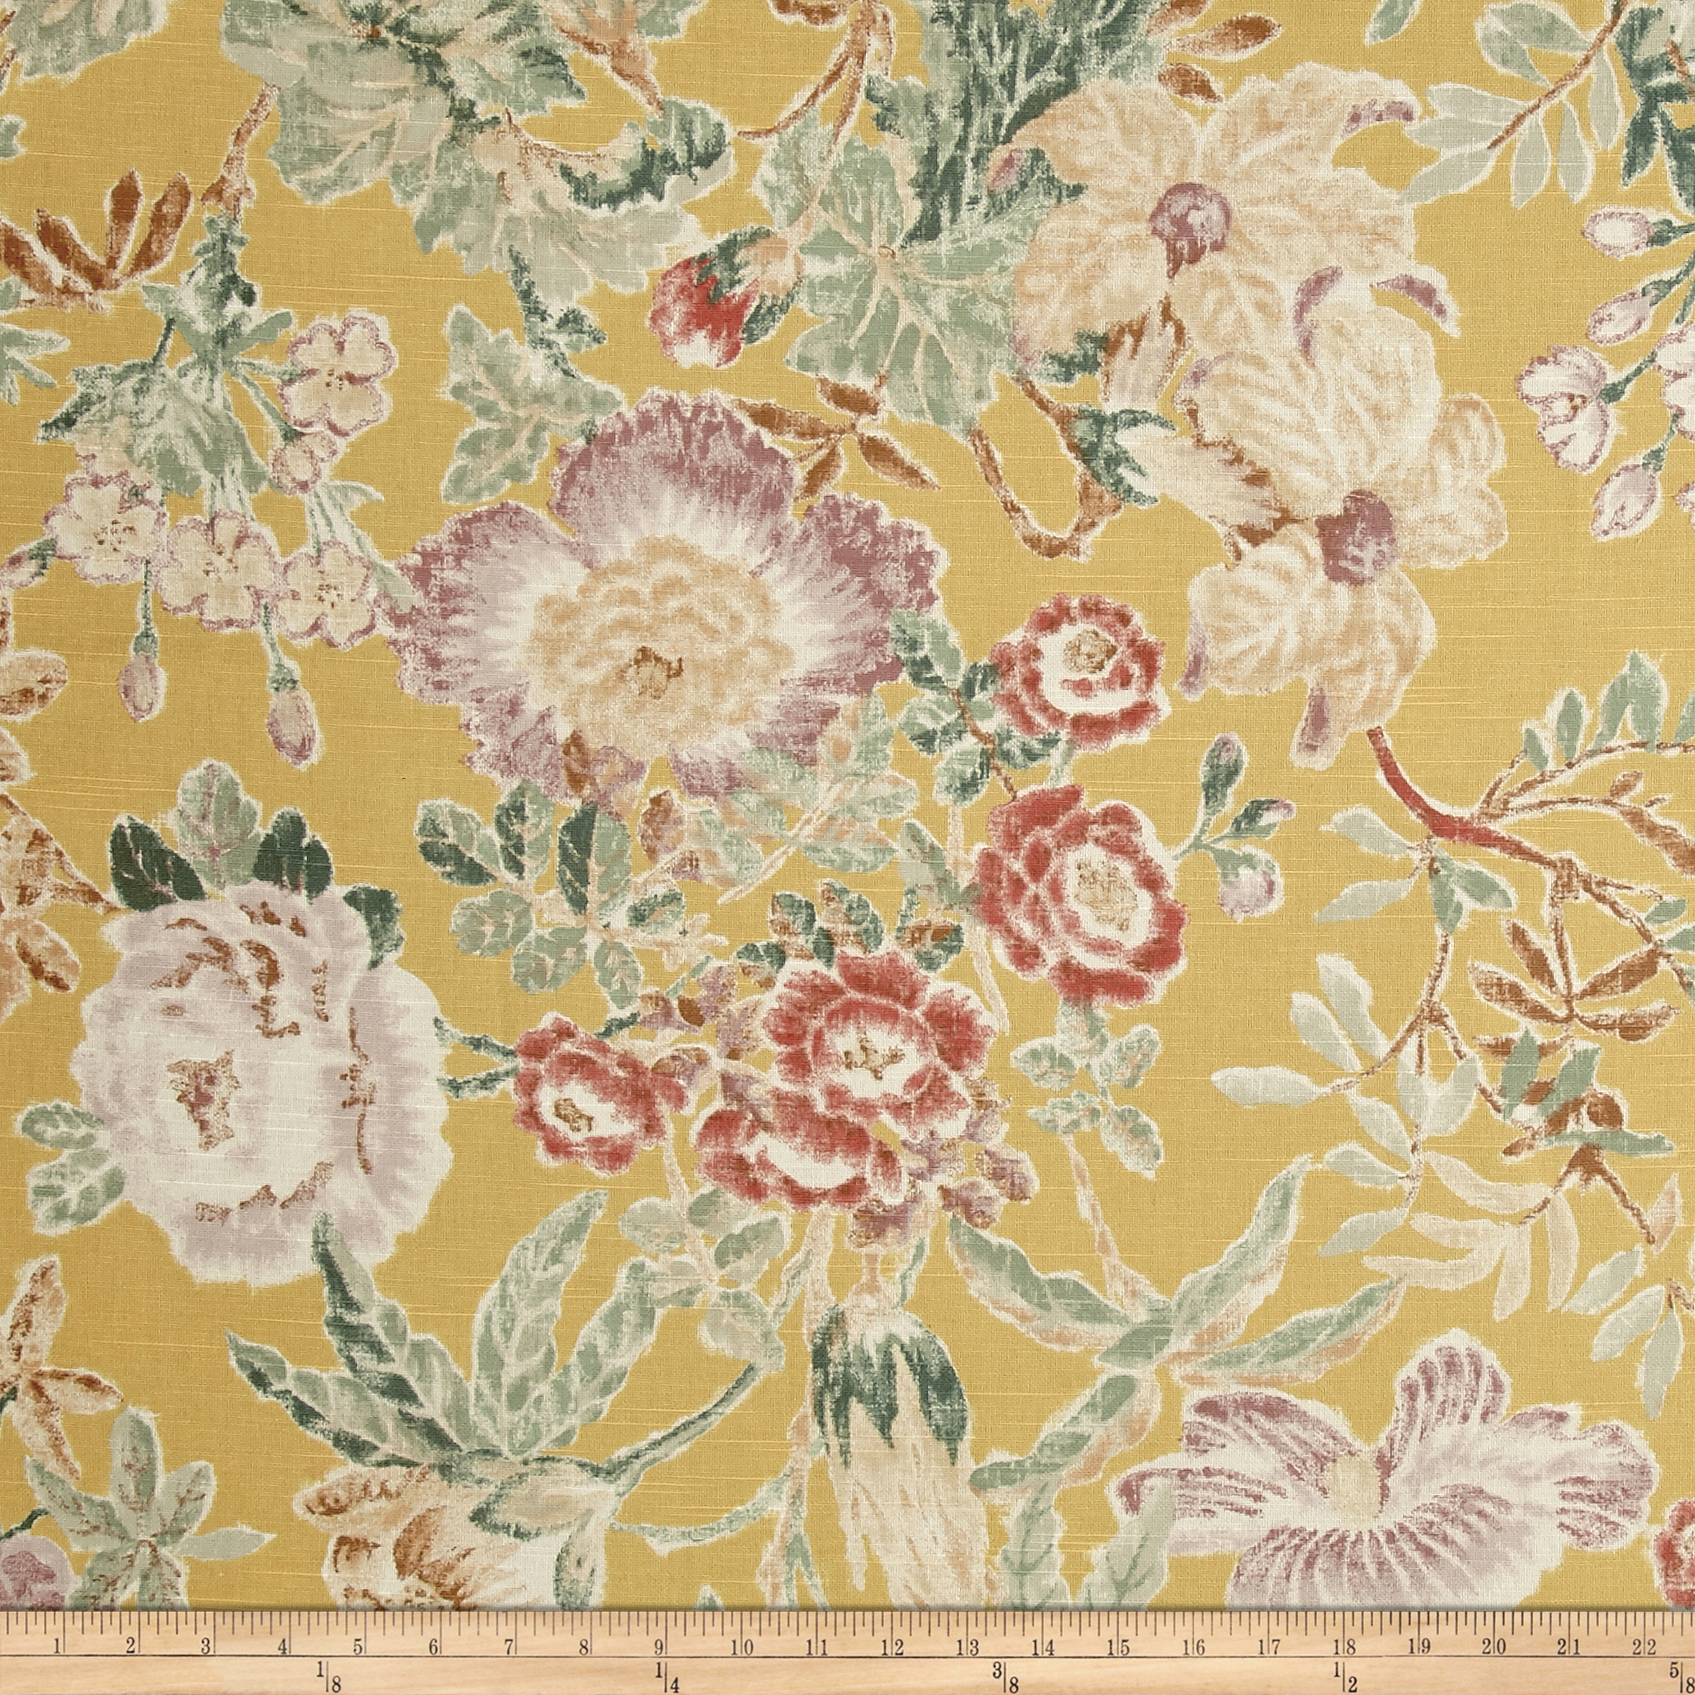 P/Kaufmann Mixed Bouquet Floral Jonquil Fabric by P Kaufman in USA